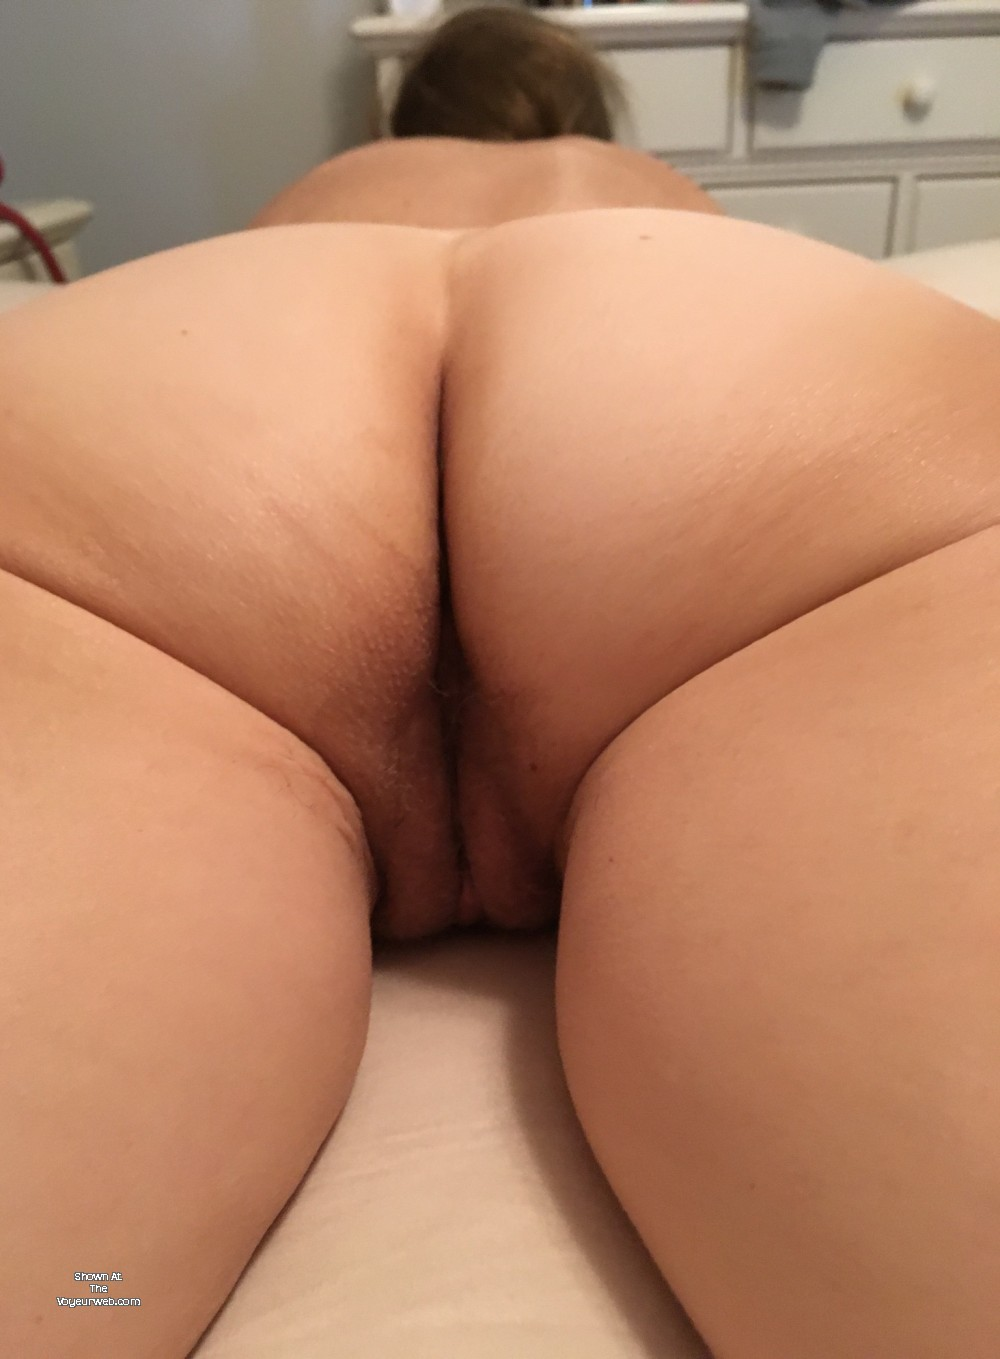 Pic #1 My wife's ass - My Wife -50+